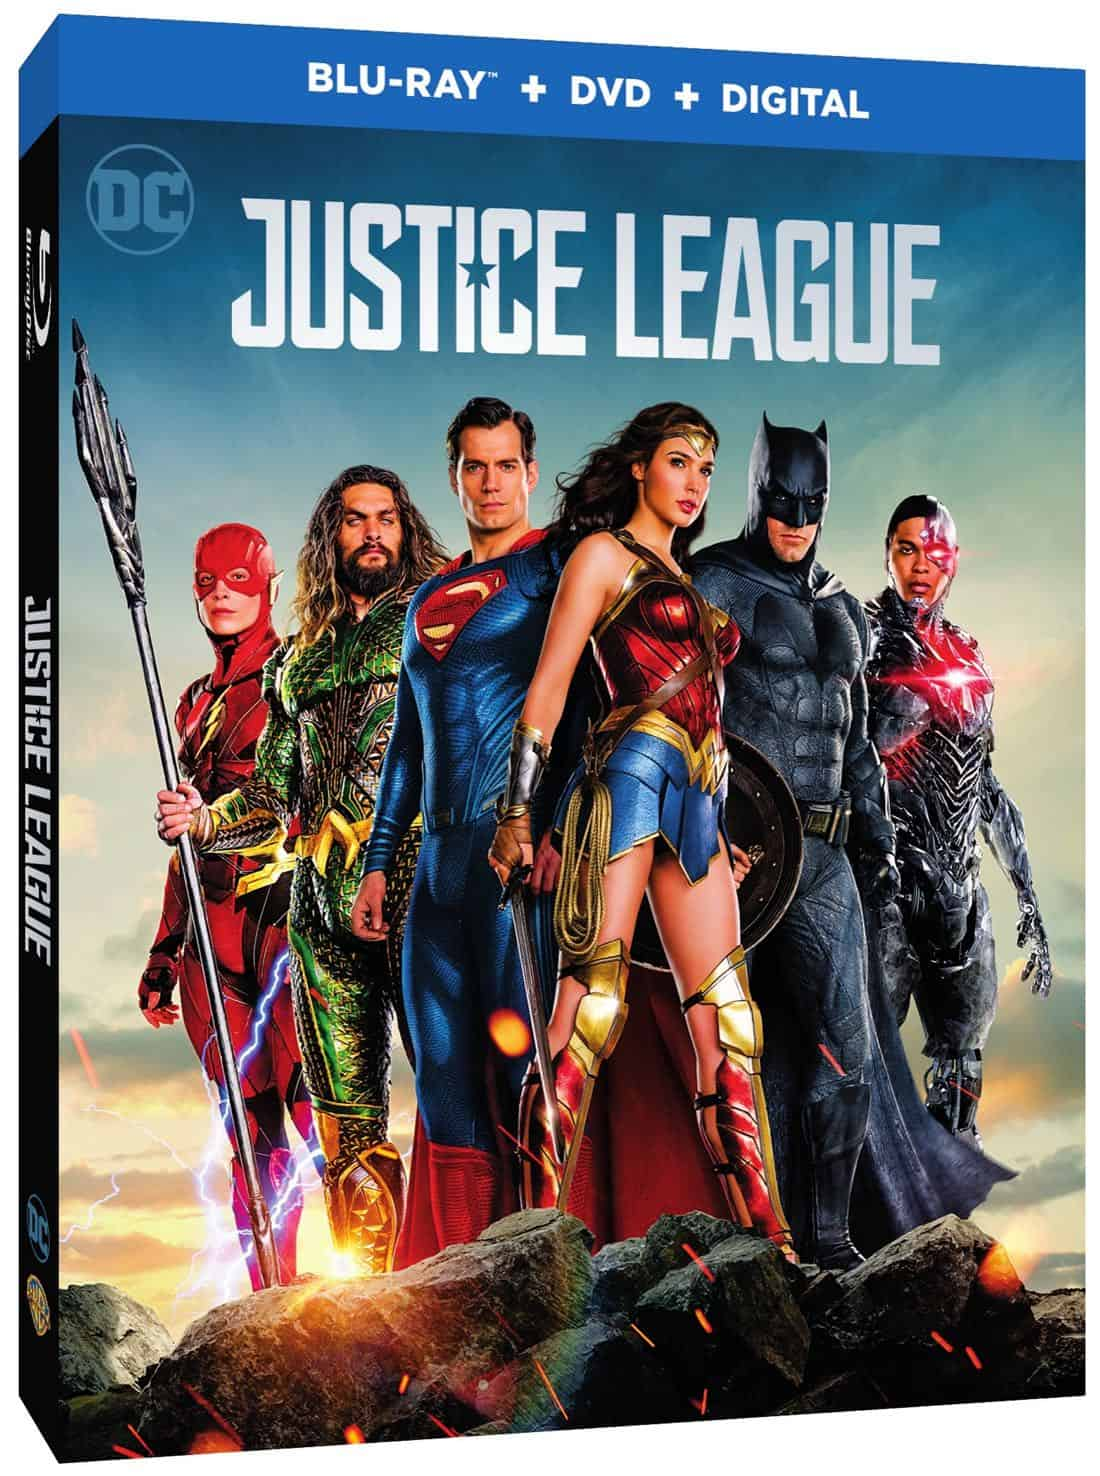 Justice-League-Bluray-DVD